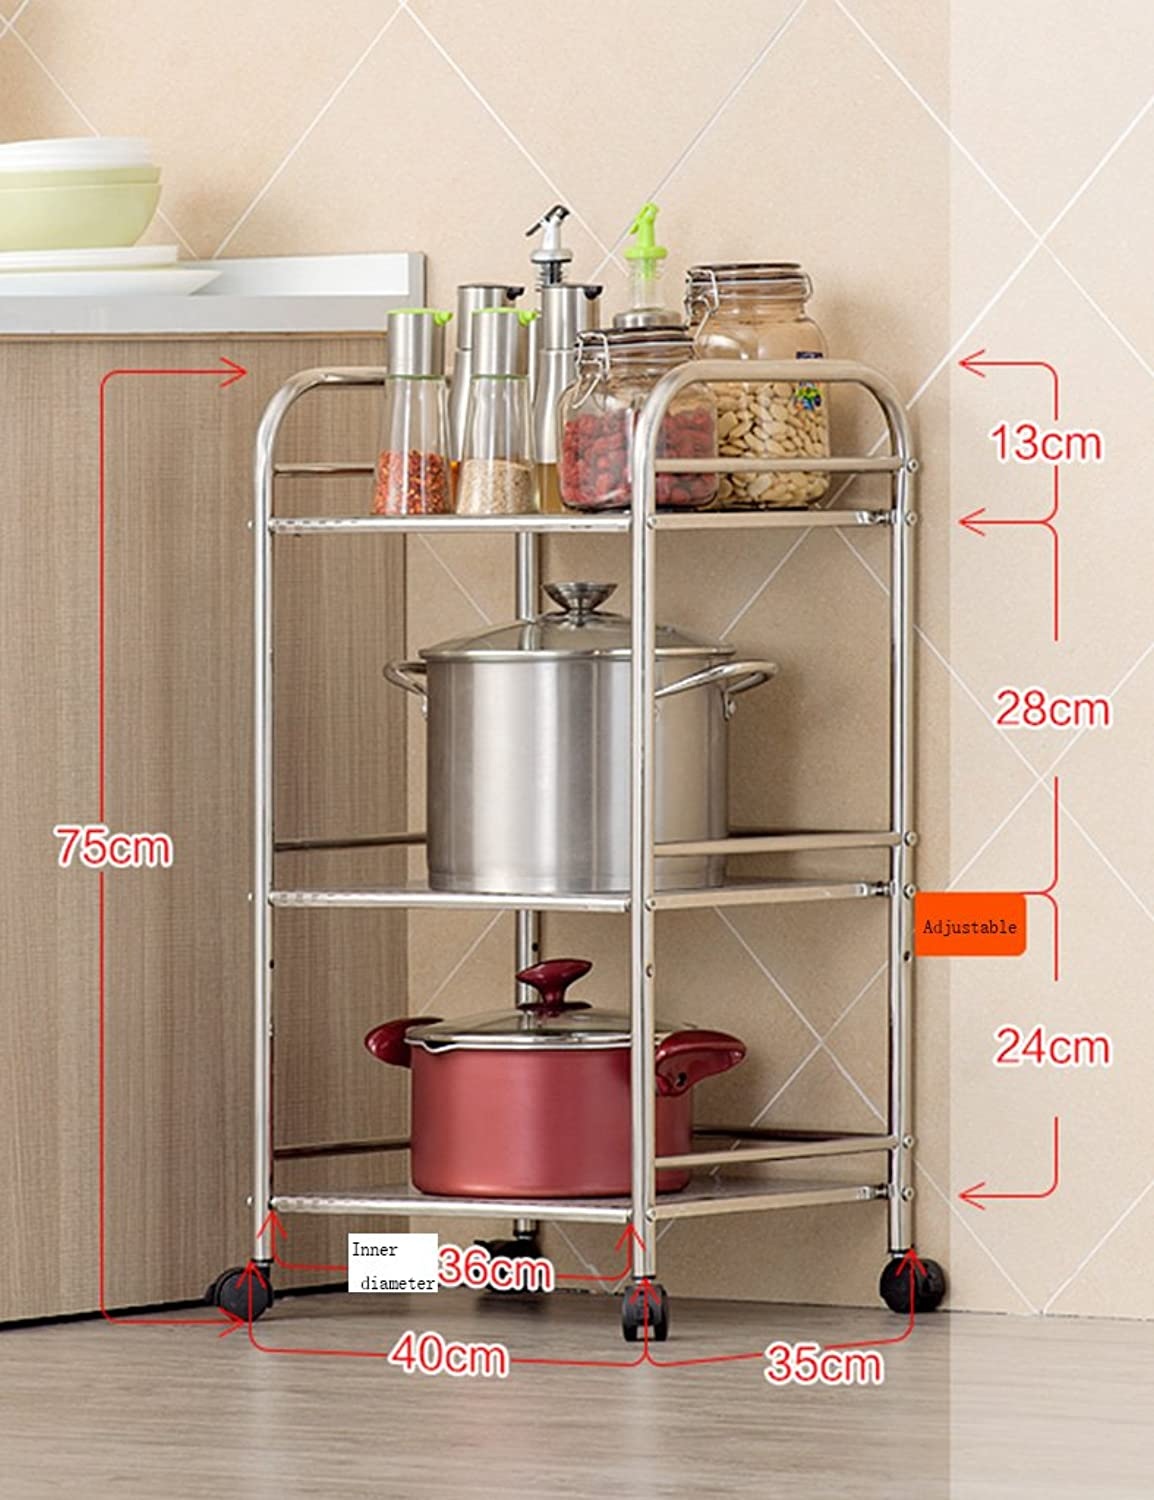 Shelving Unit on Wheel Pantry Microwave Oven Rack Floor Pot Rack Stainless Steel Kitchen Supplies Storage Shelves (Size   40cm)